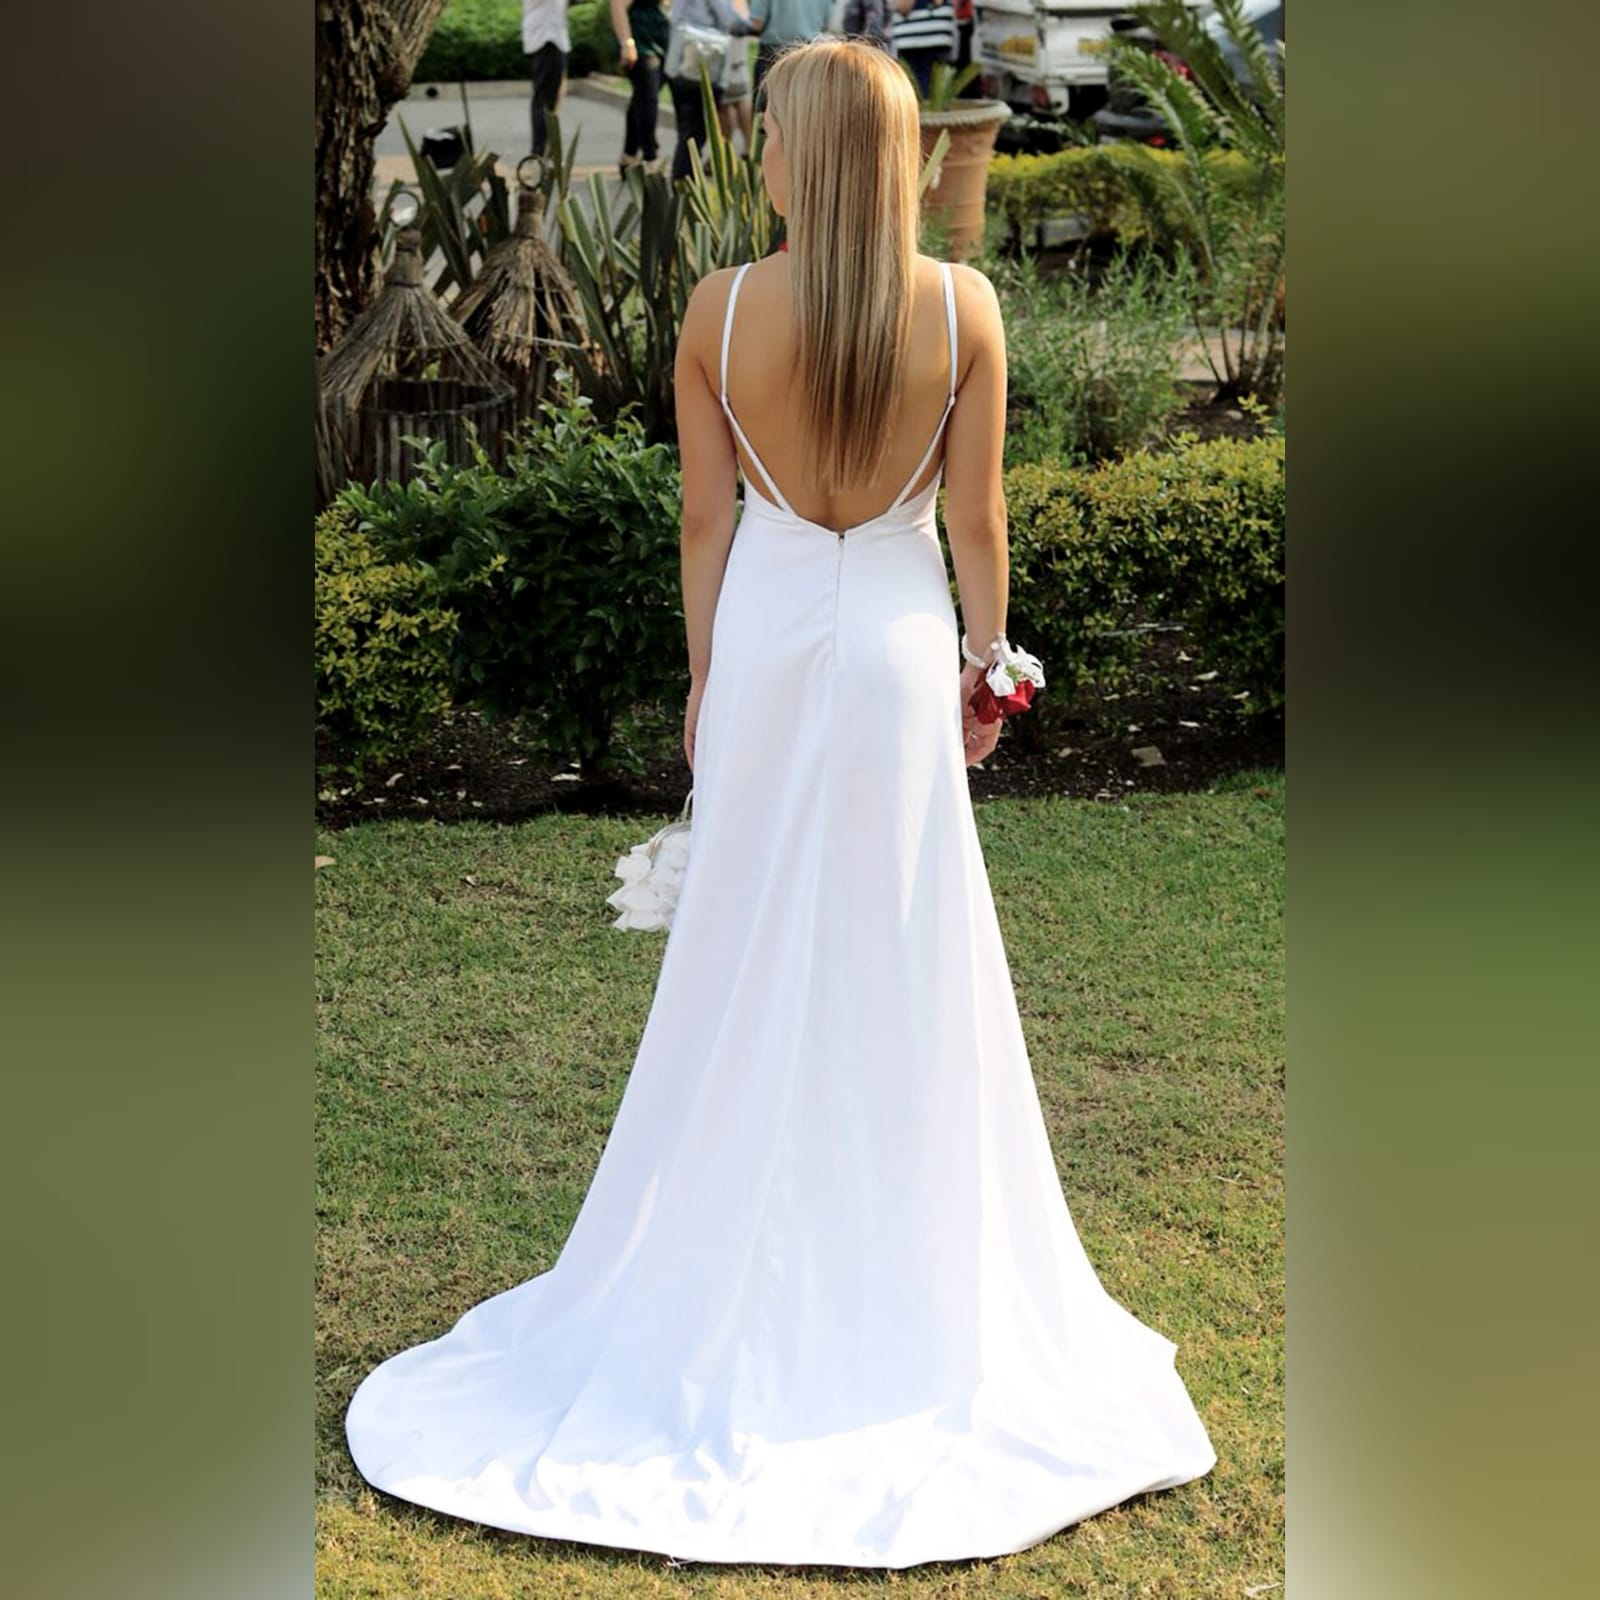 White satin long prom dress with a low open back 4 white satin long prom dress with a low open back, with strap detail. Straight neckline, 2 slits and a train.